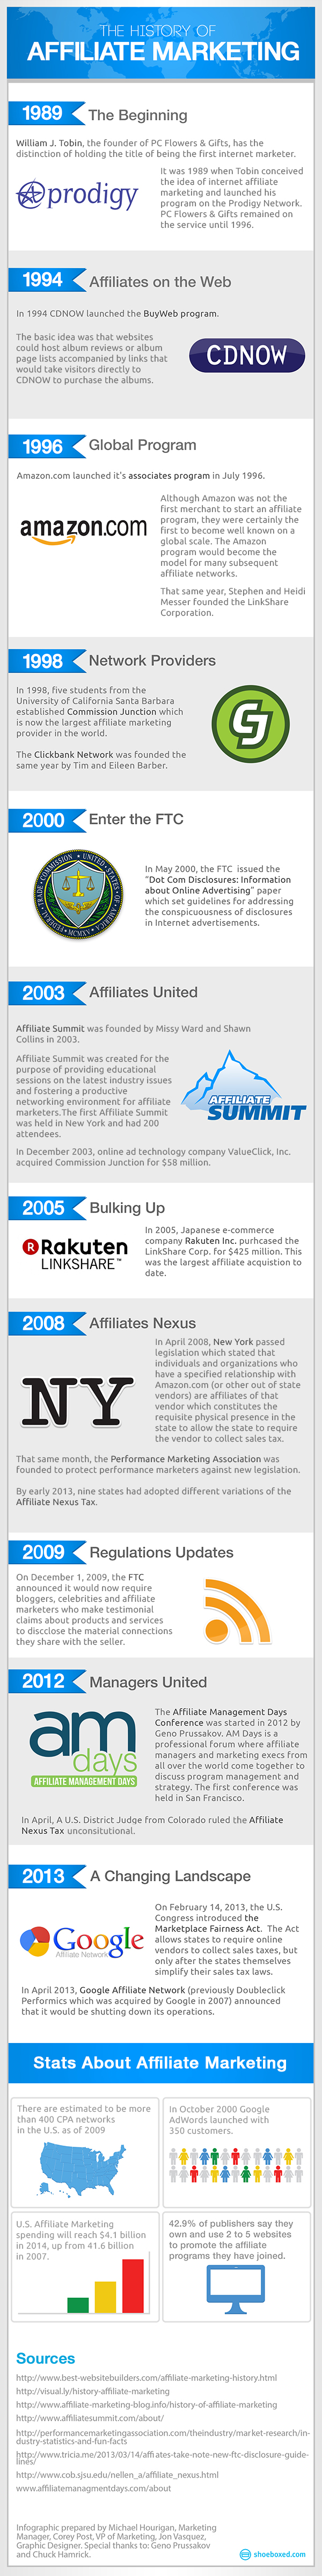 History of Affiliated Marketing